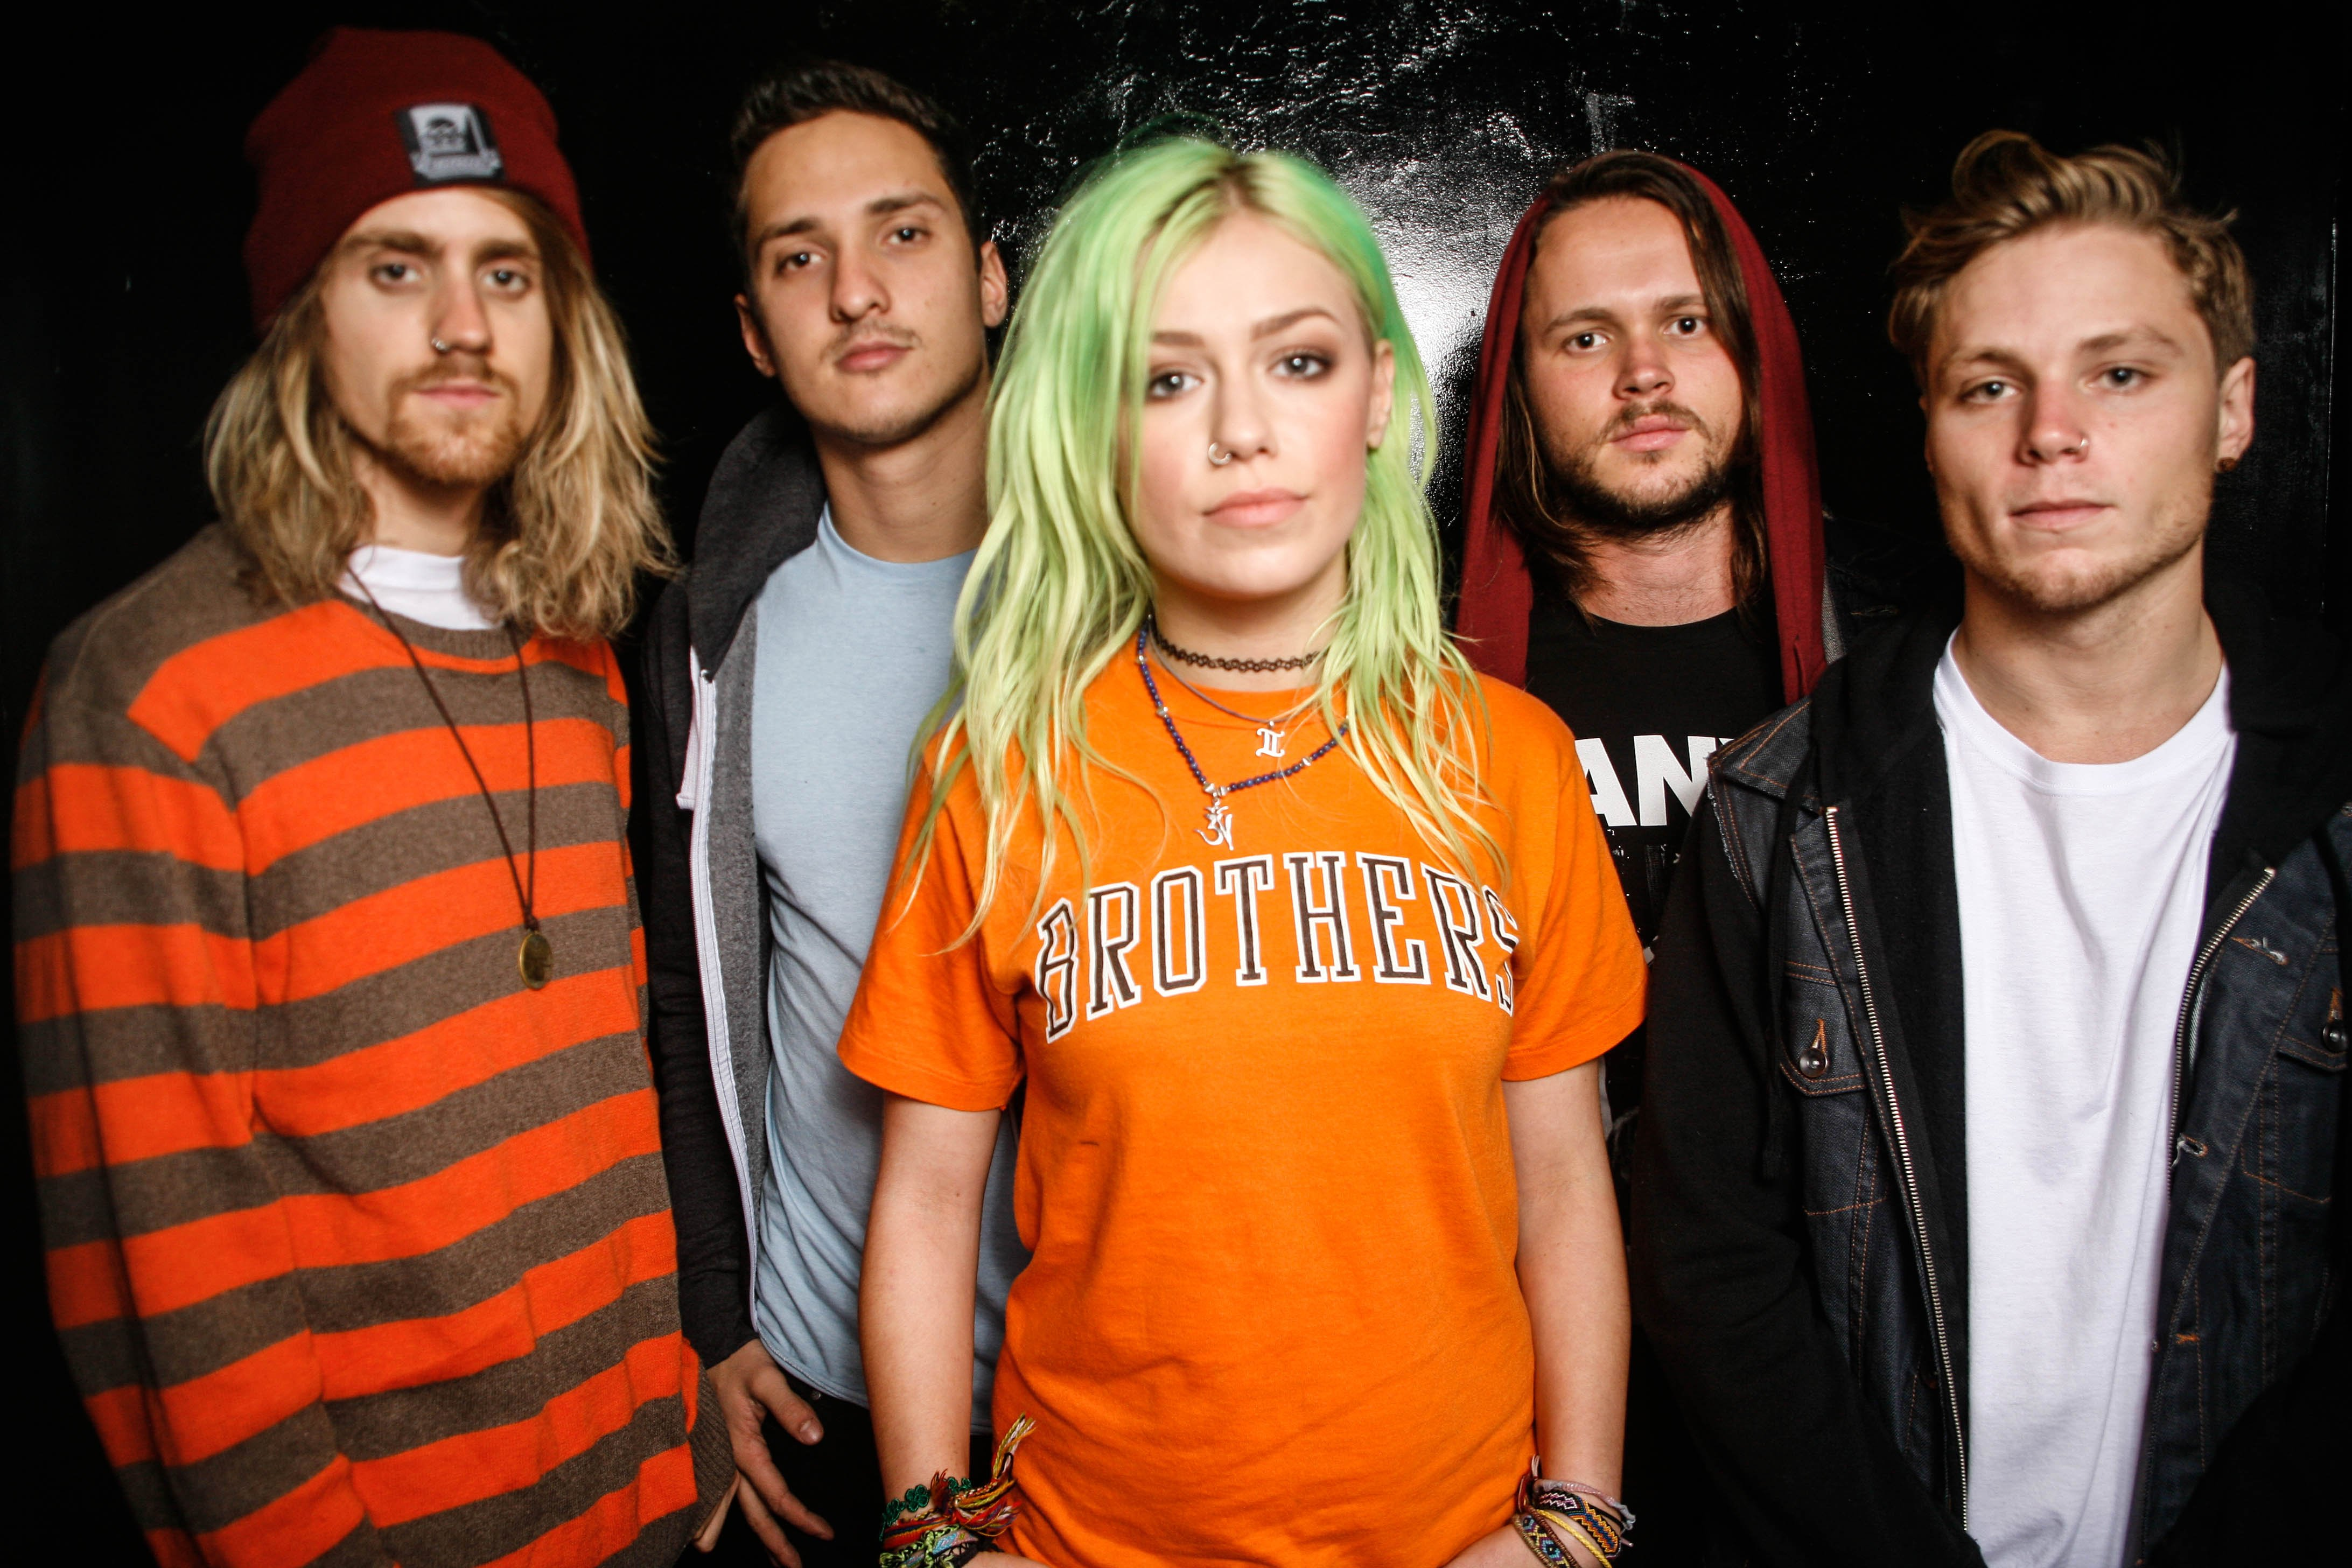 WATCH Tonight Alive Perform The Other Side In Full 4368x2912